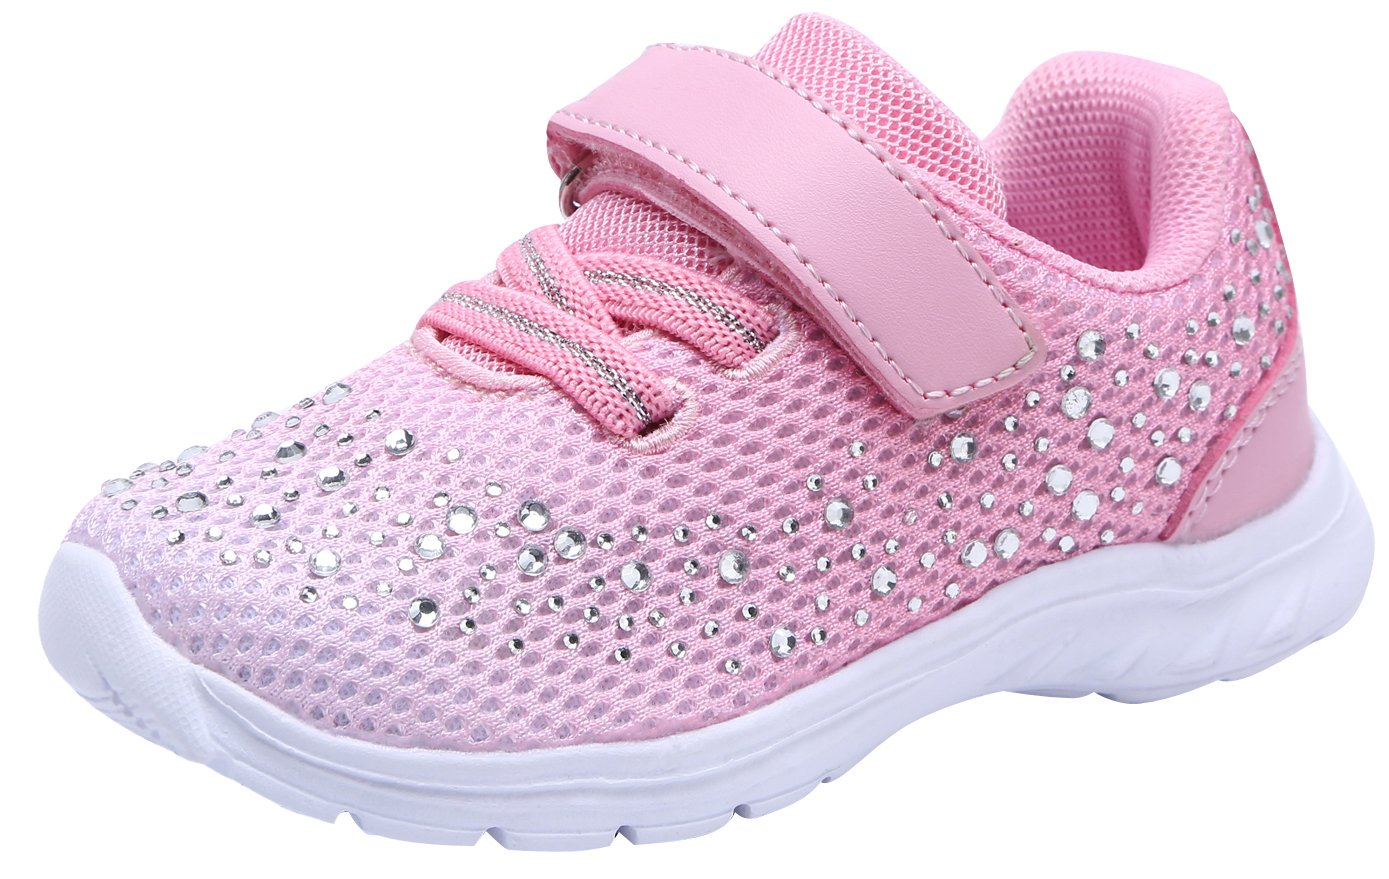 G GEERS Kids Girl's Fashion Sneakers Lightweight Casual Sports Shoes OS005 PINK/WHITE-11 by G GEERS (Image #1)